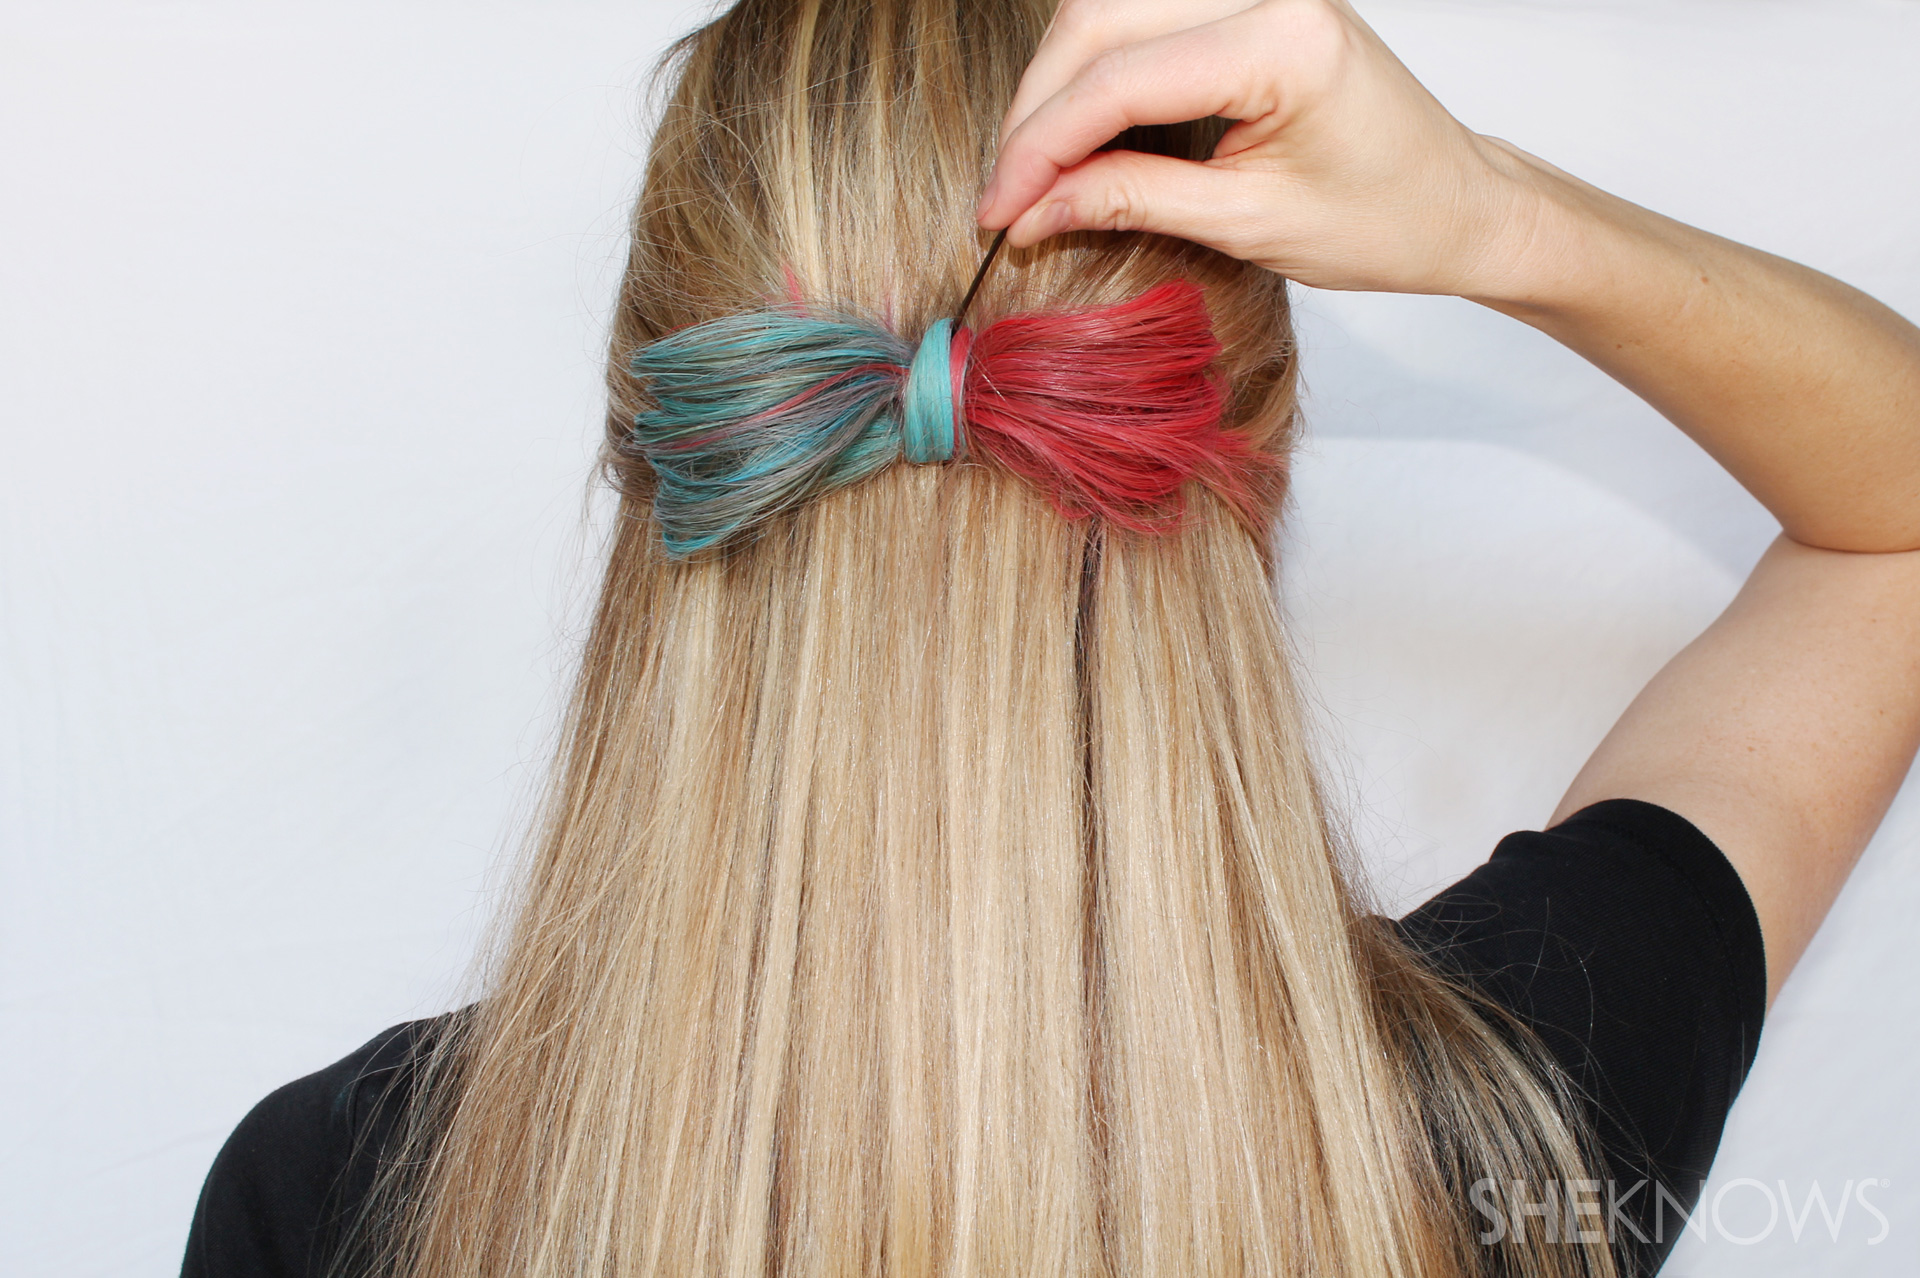 Hair-chalked hairstyles